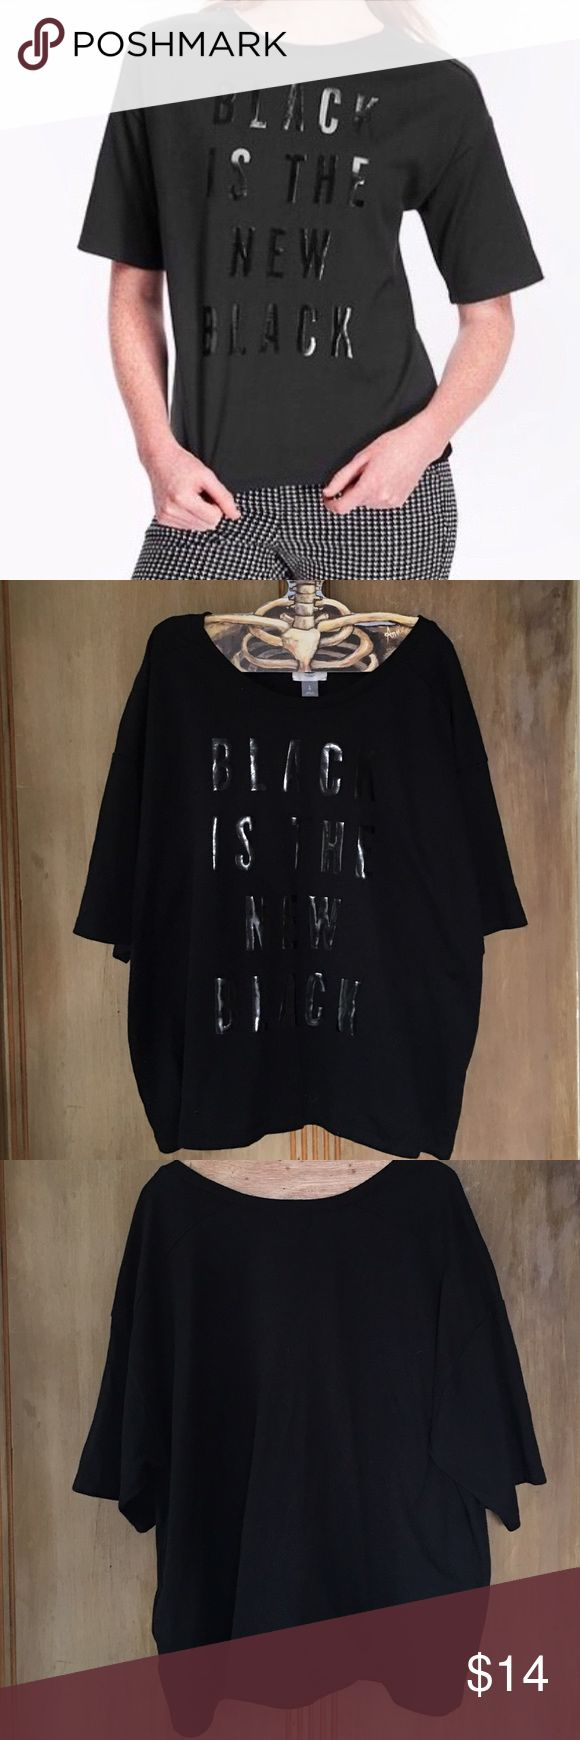 Old Navy Black Is The New Black Top Heavy cotton top from old navy. Kind of feels like a really light sweatshirt. A bit oversized. Gently used. Old Navy Tops